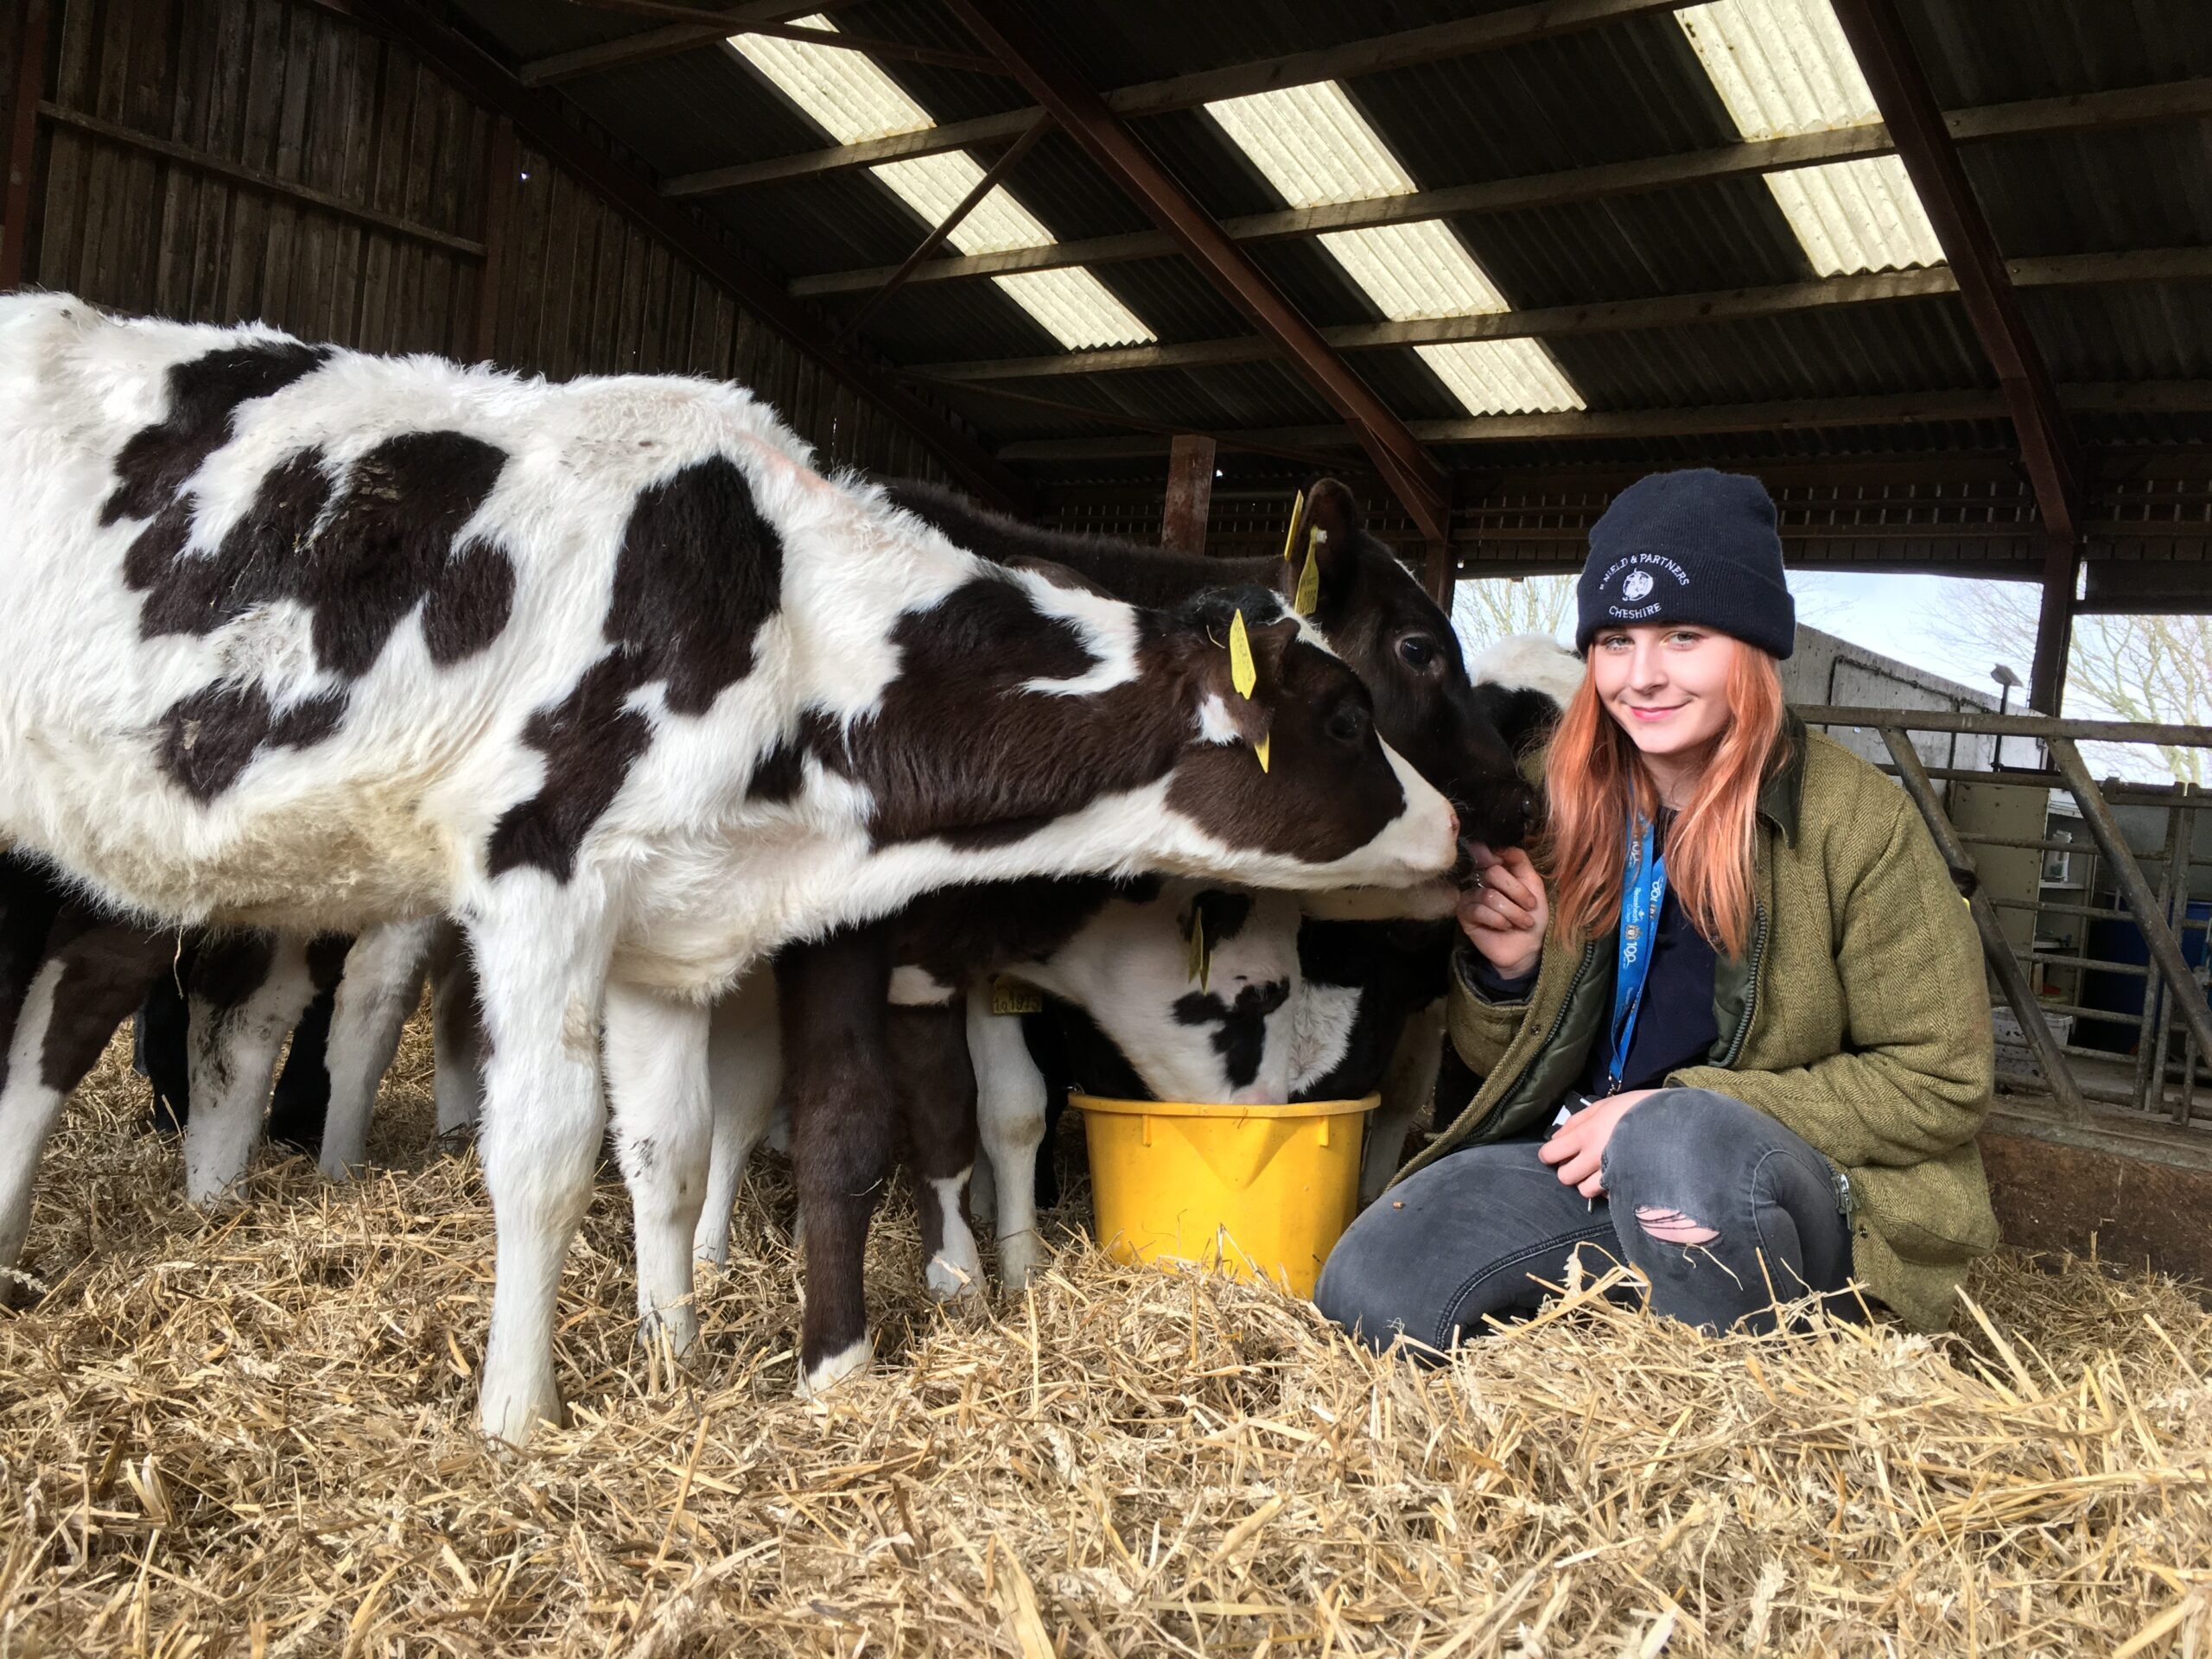 Morrisons funds college studies for agriculture apprentices